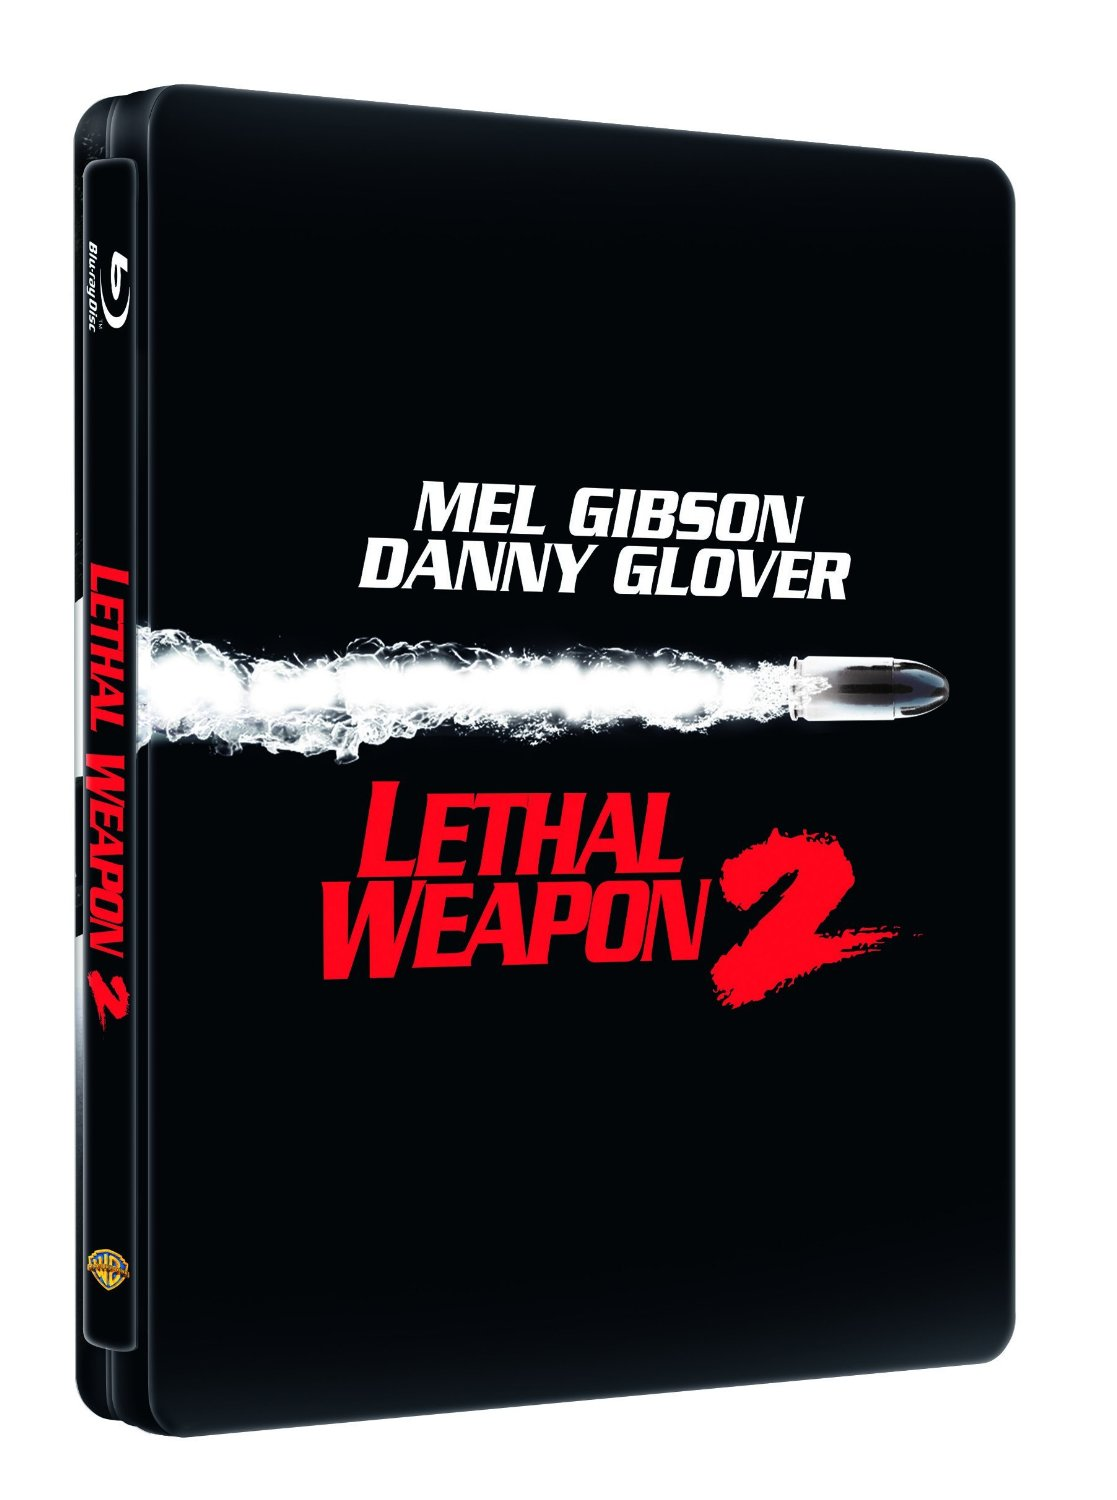 Lethal Weapon 2 steelbook fr